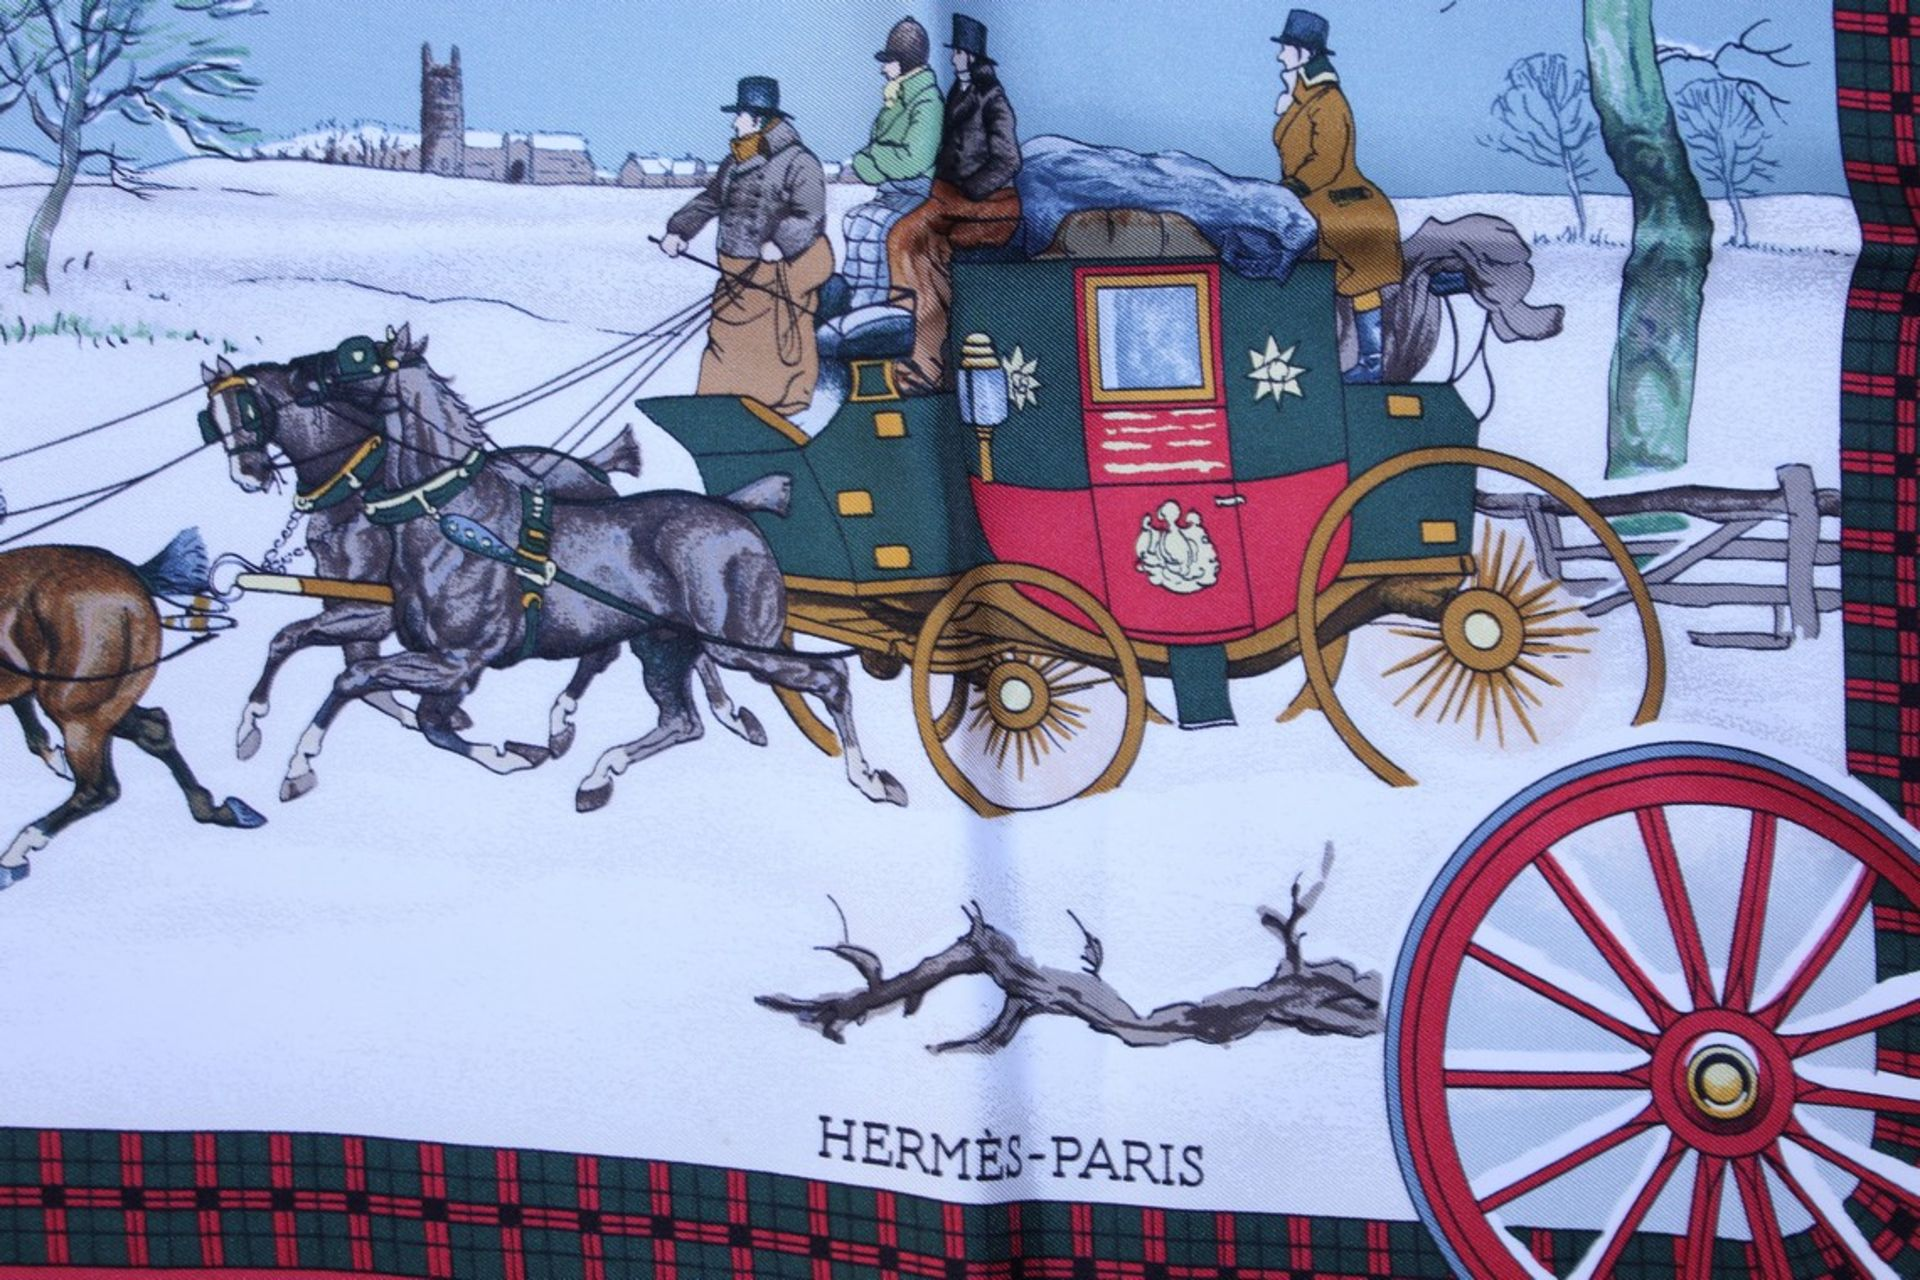 RRP £680 Hermes 100% Twill Silk Scarf , L'Hiver En Poste By Philippee Ledoux, 90X90Cm, Condition - Image 3 of 4